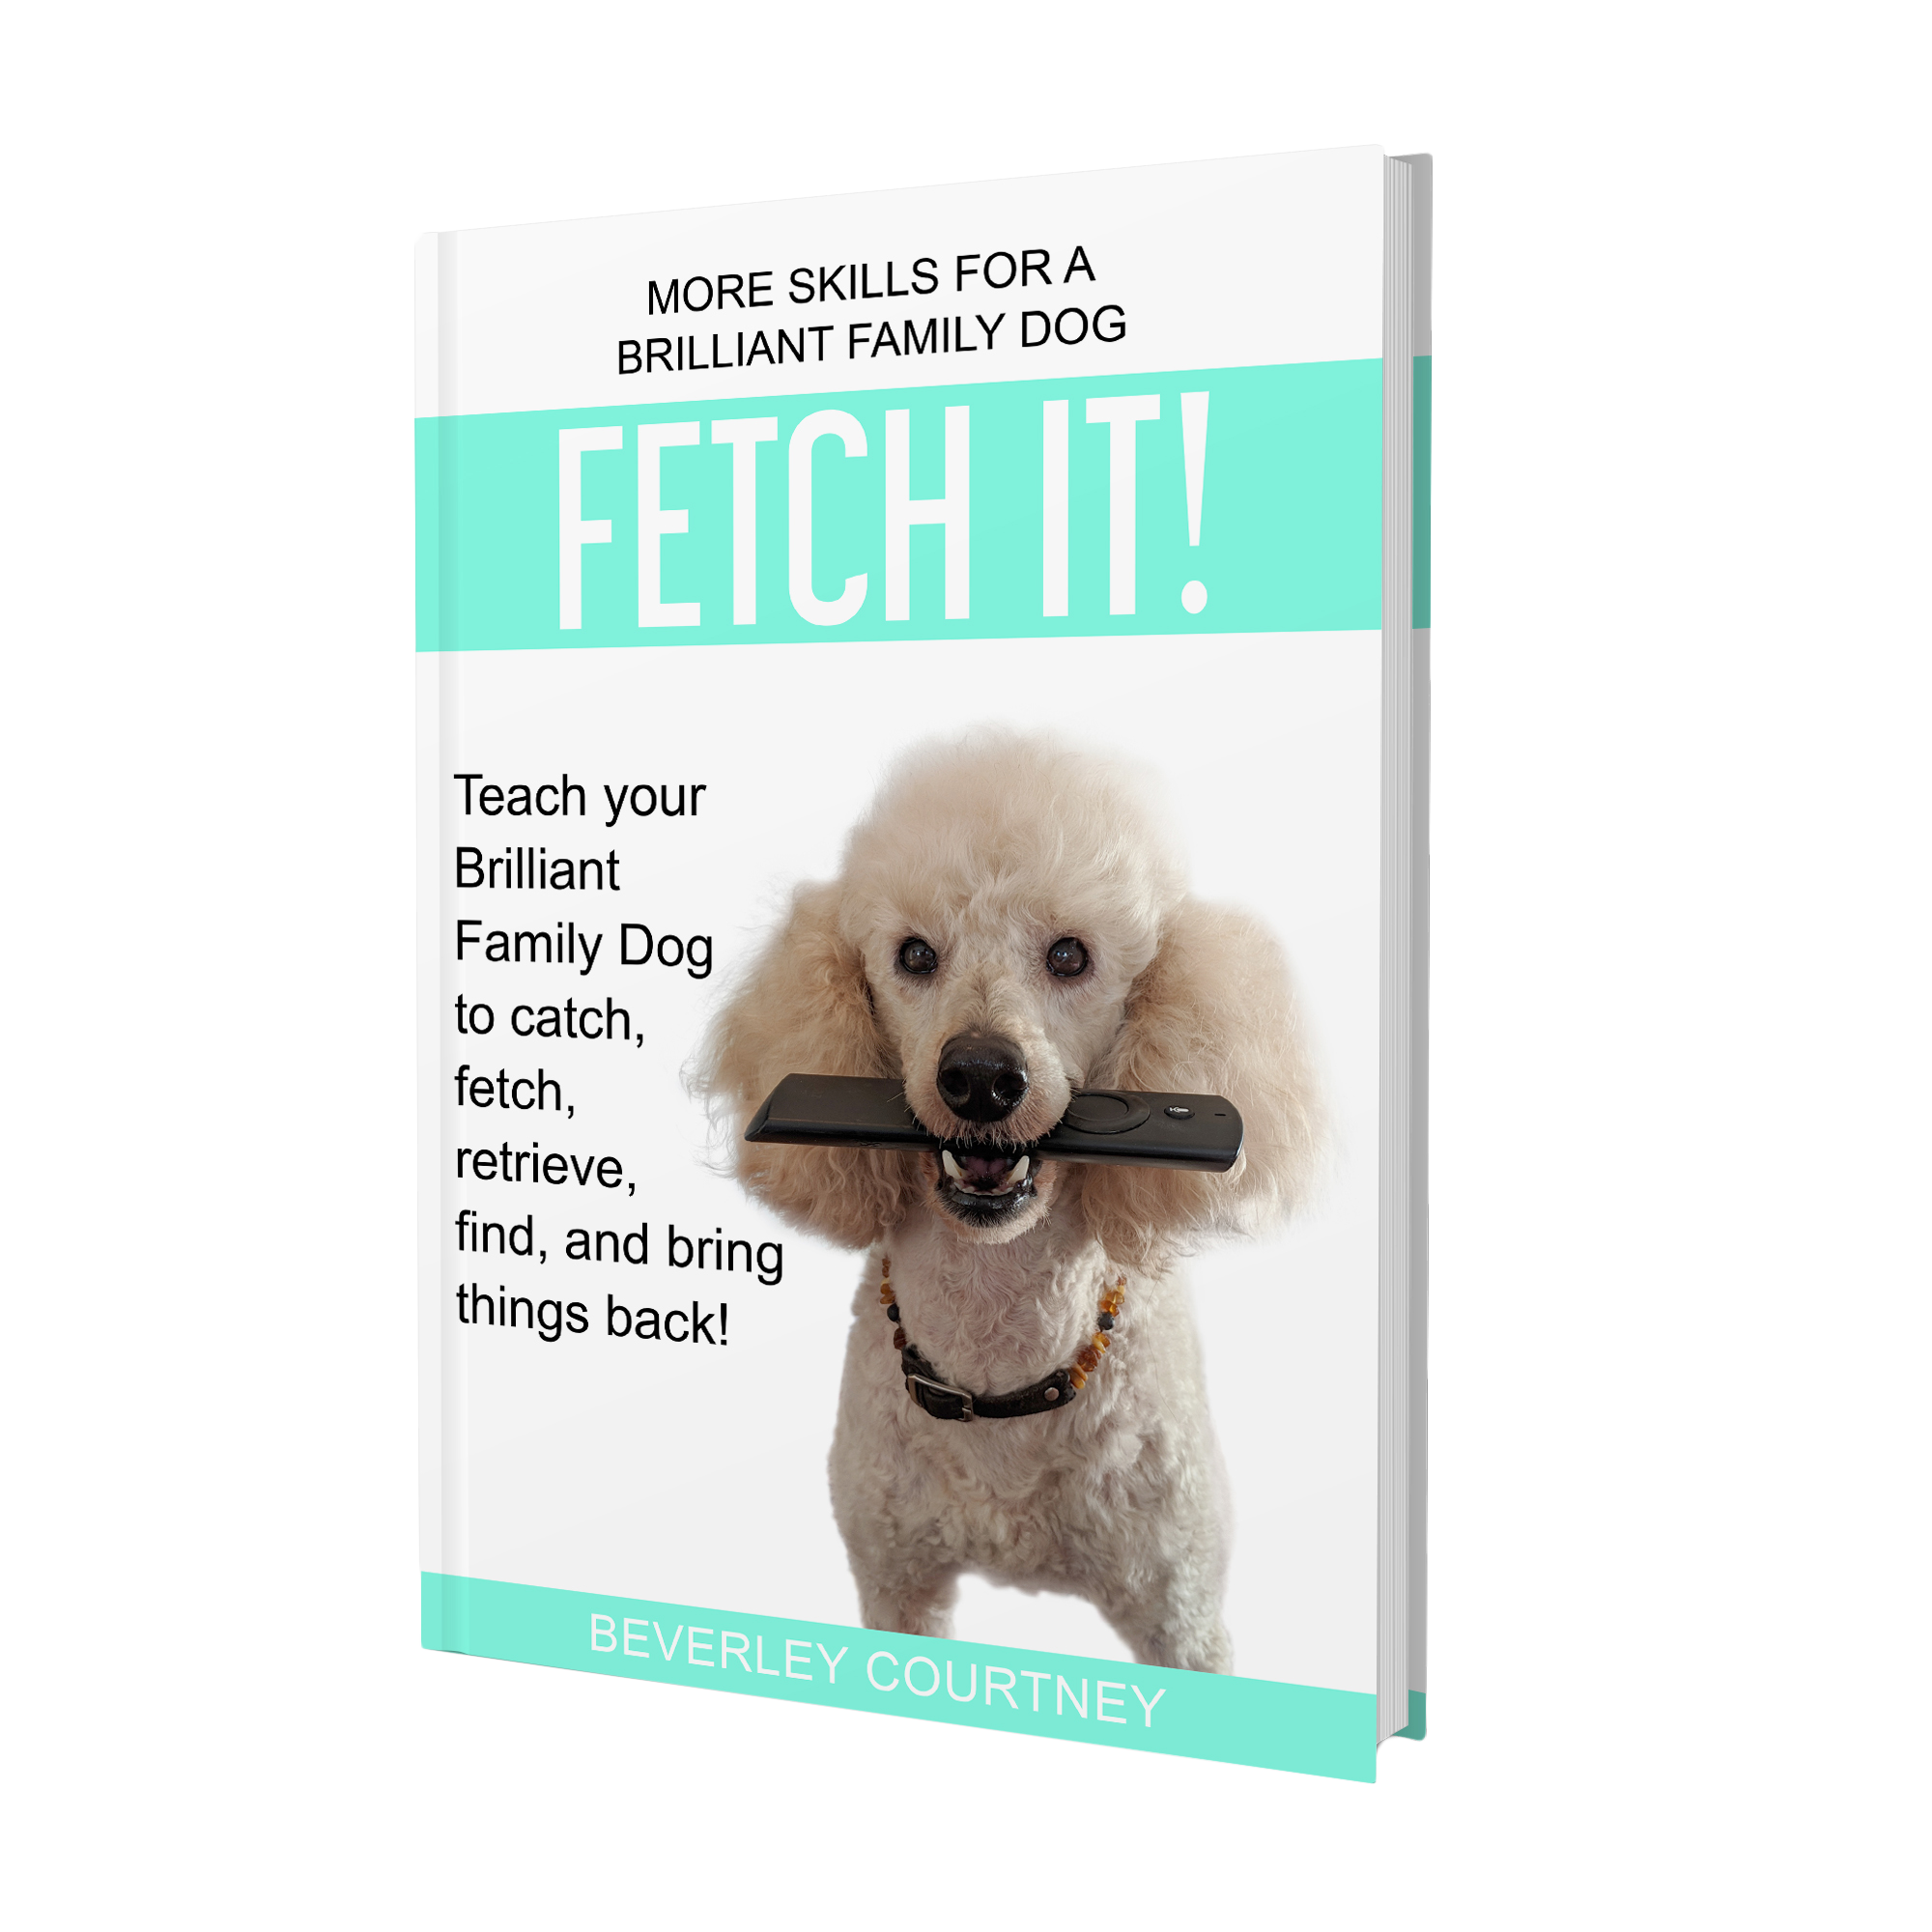 How to teach your Brilliant Family Dog to catch, fetch, retrieve, find, and bring things back! This new book gives you step-by-step instructions for a speedy retriever.